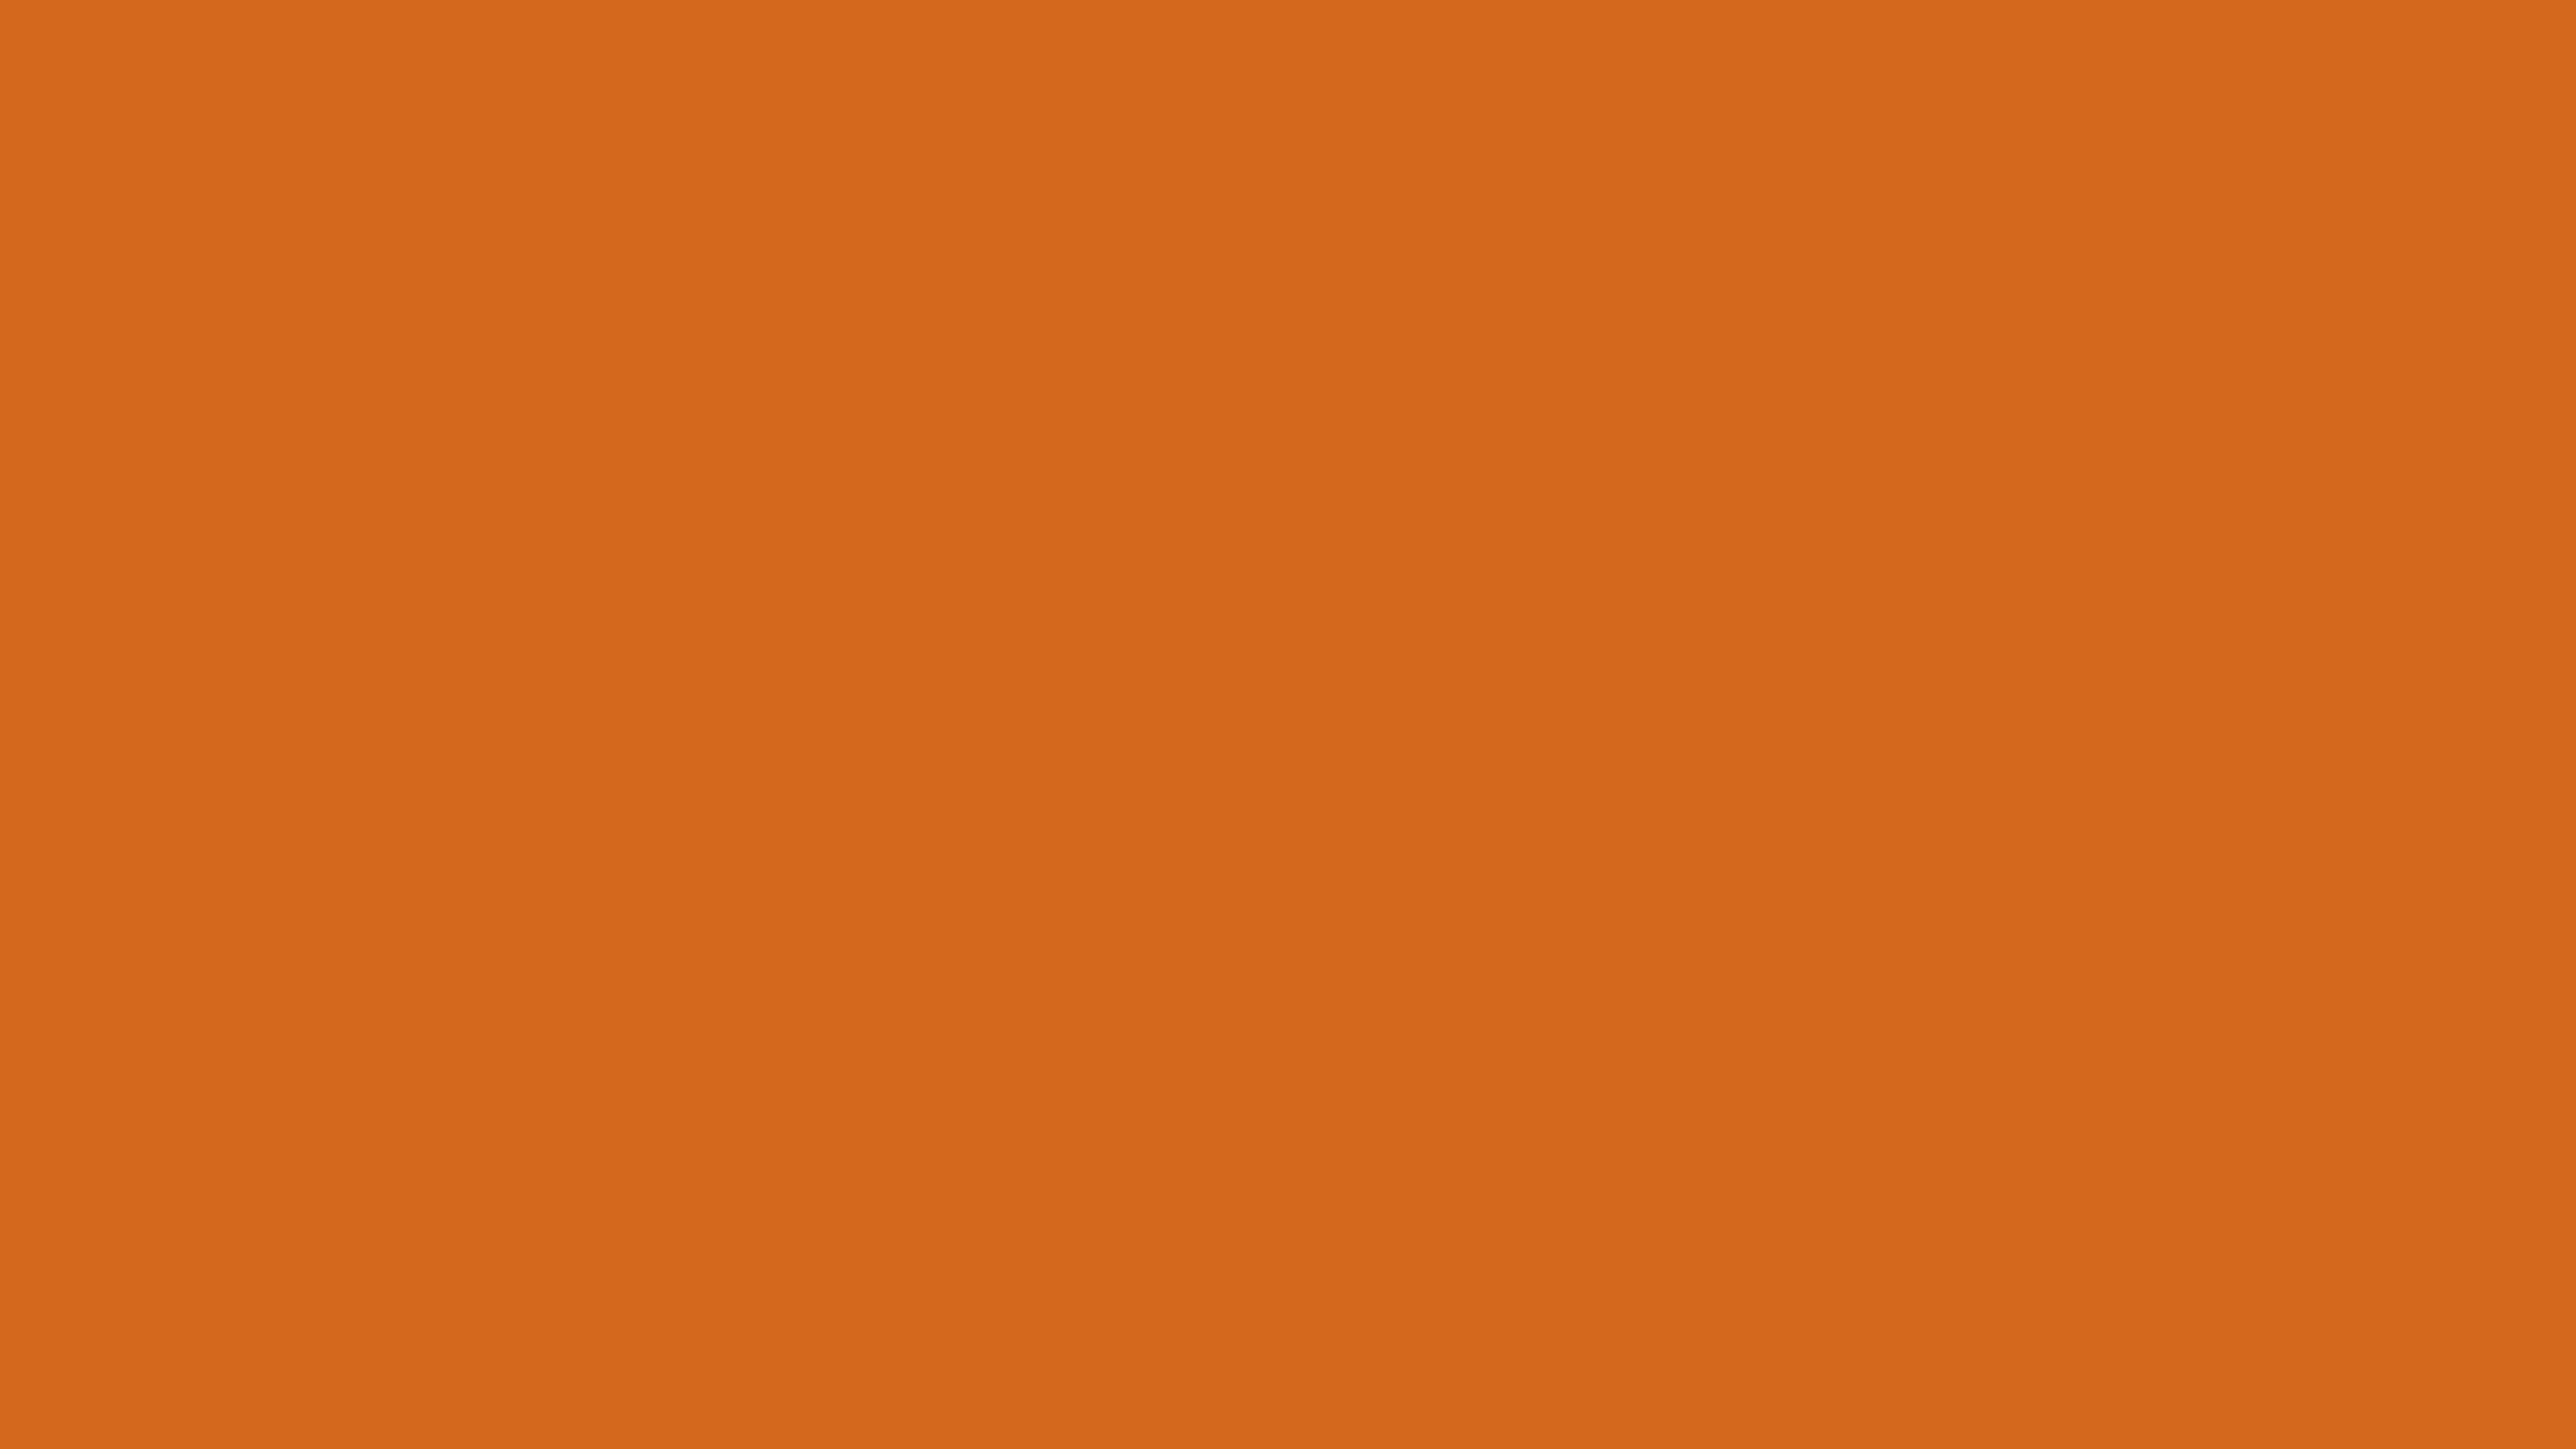 7680x4320 Cocoa Brown Solid Color Background